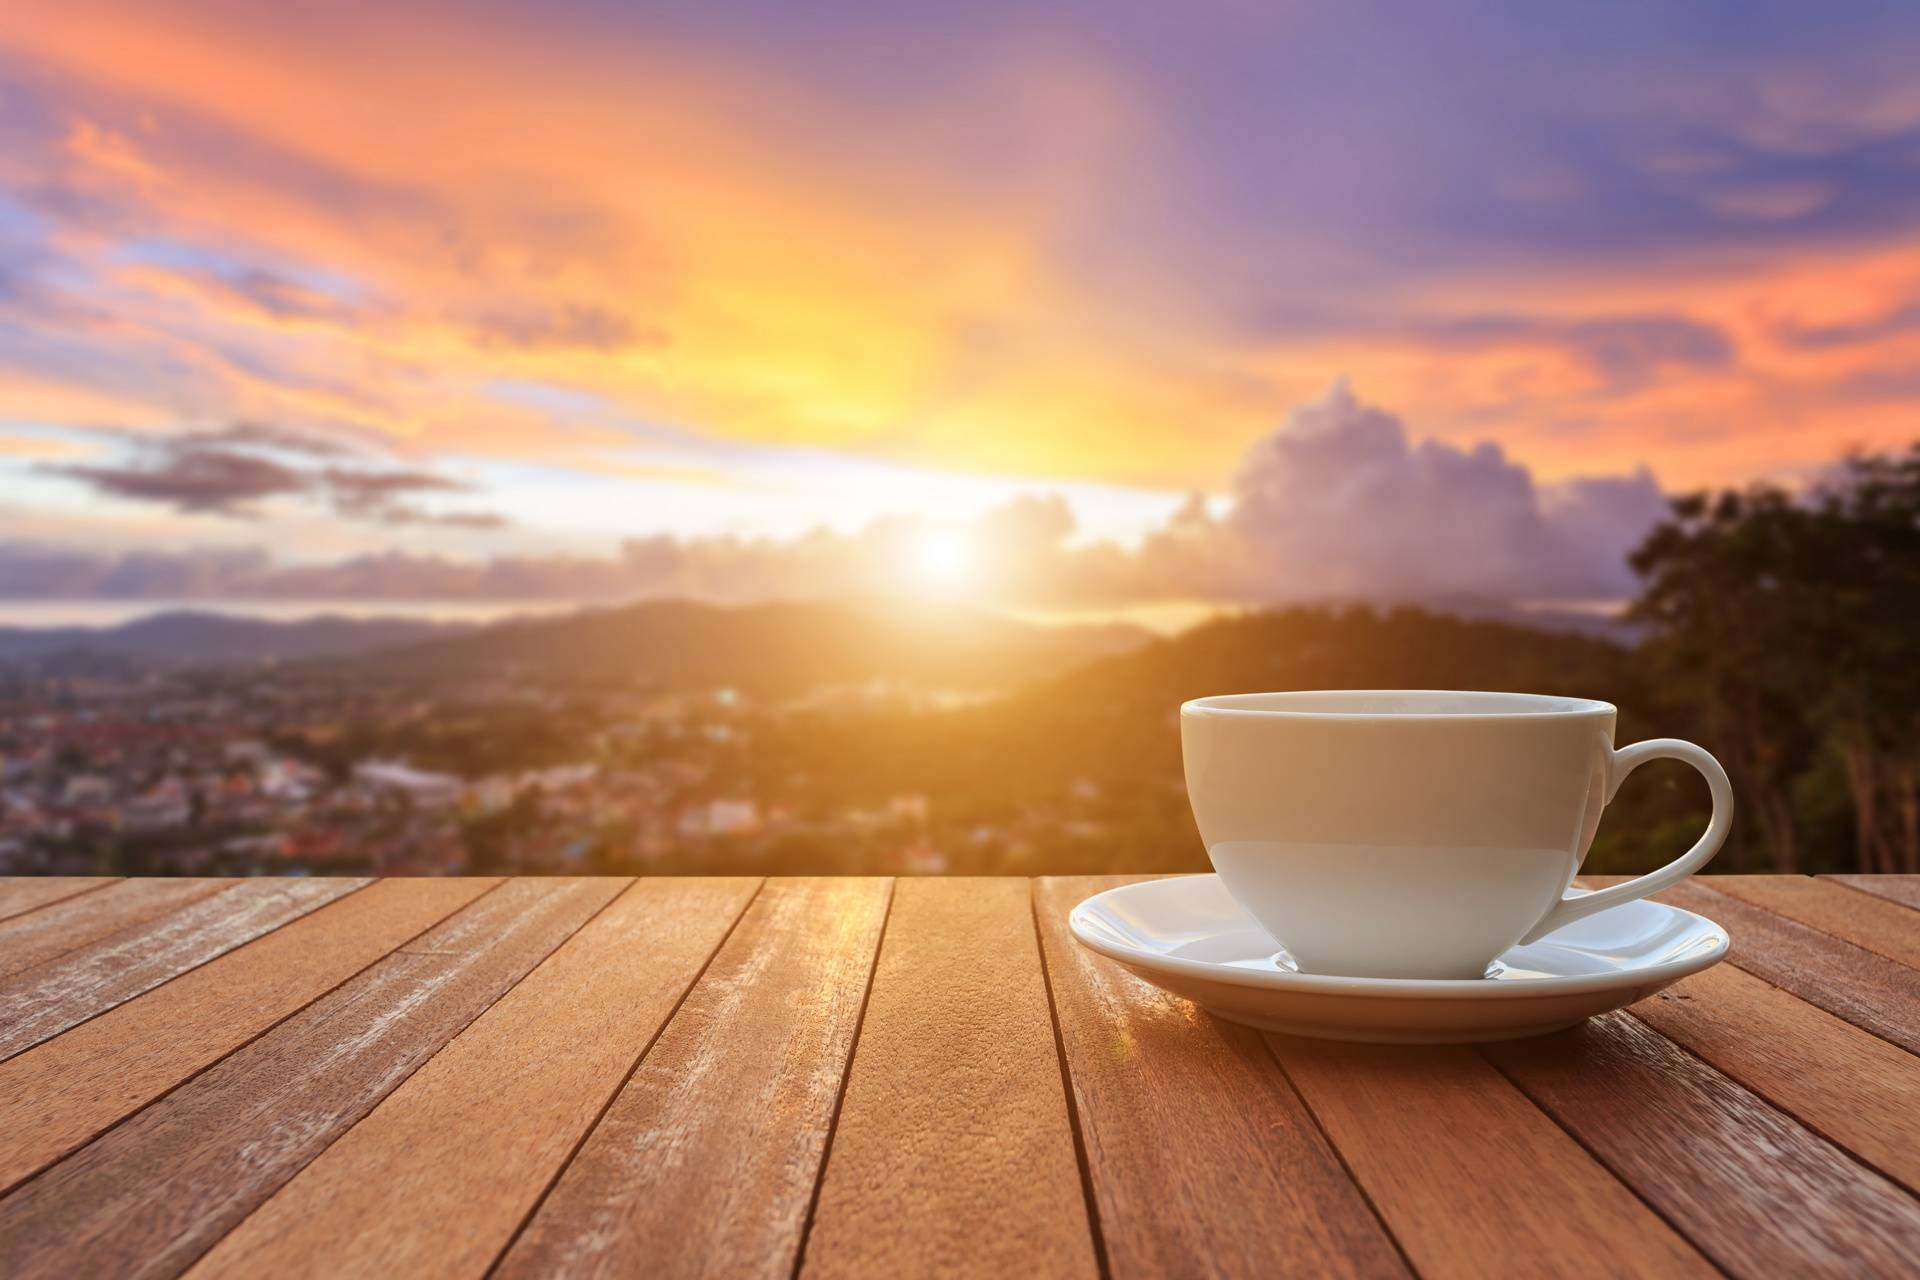 Coffee with Sunrise